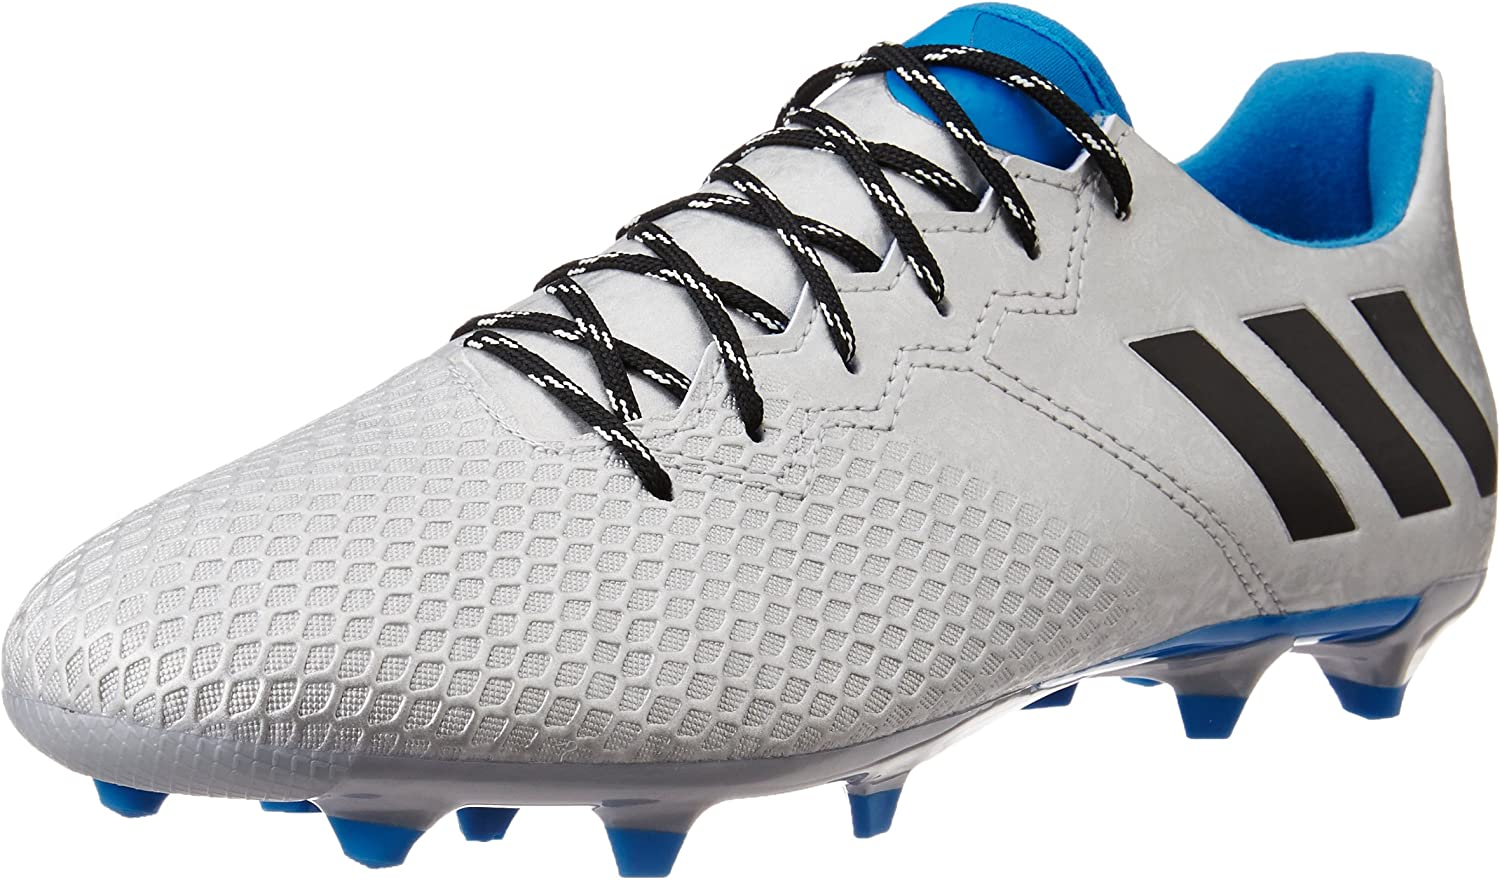 adidas Messi 16.3 FG S79631 Football